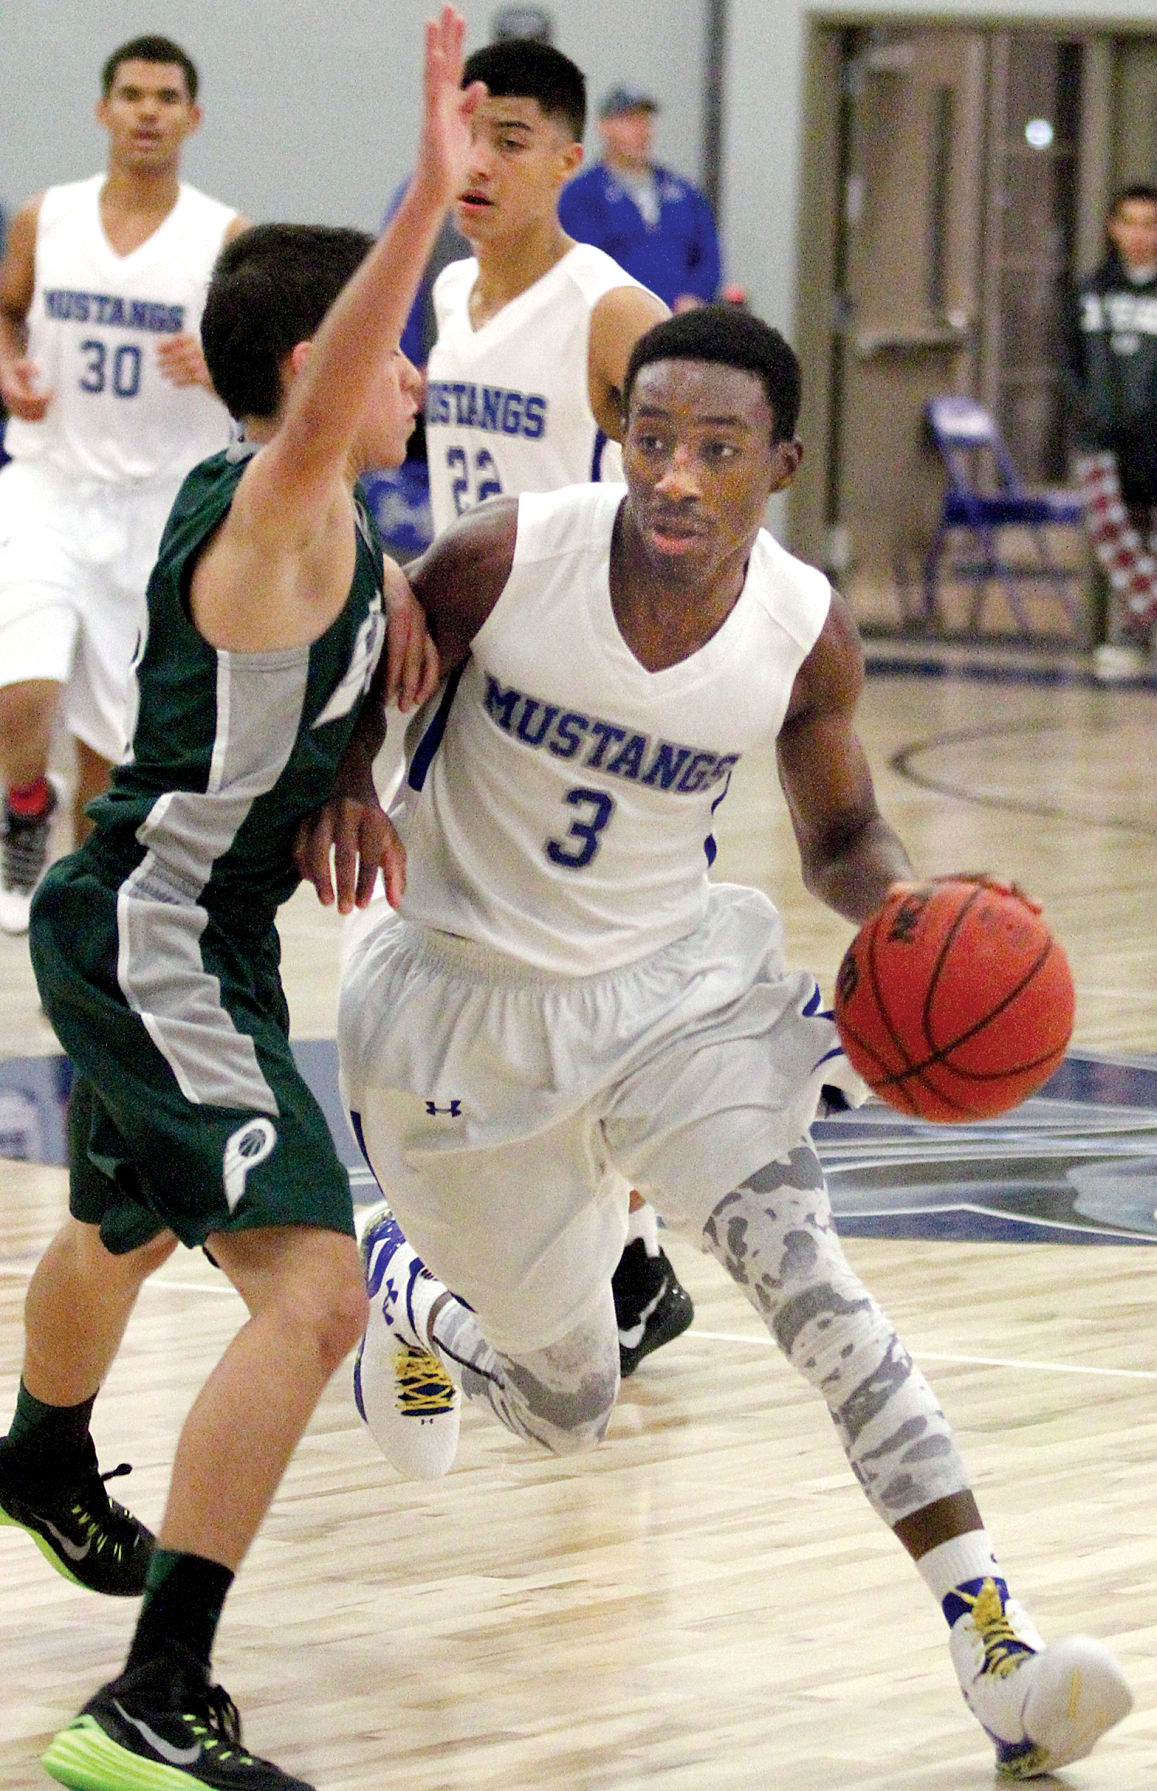 Mustangs hold on to beat Bruins